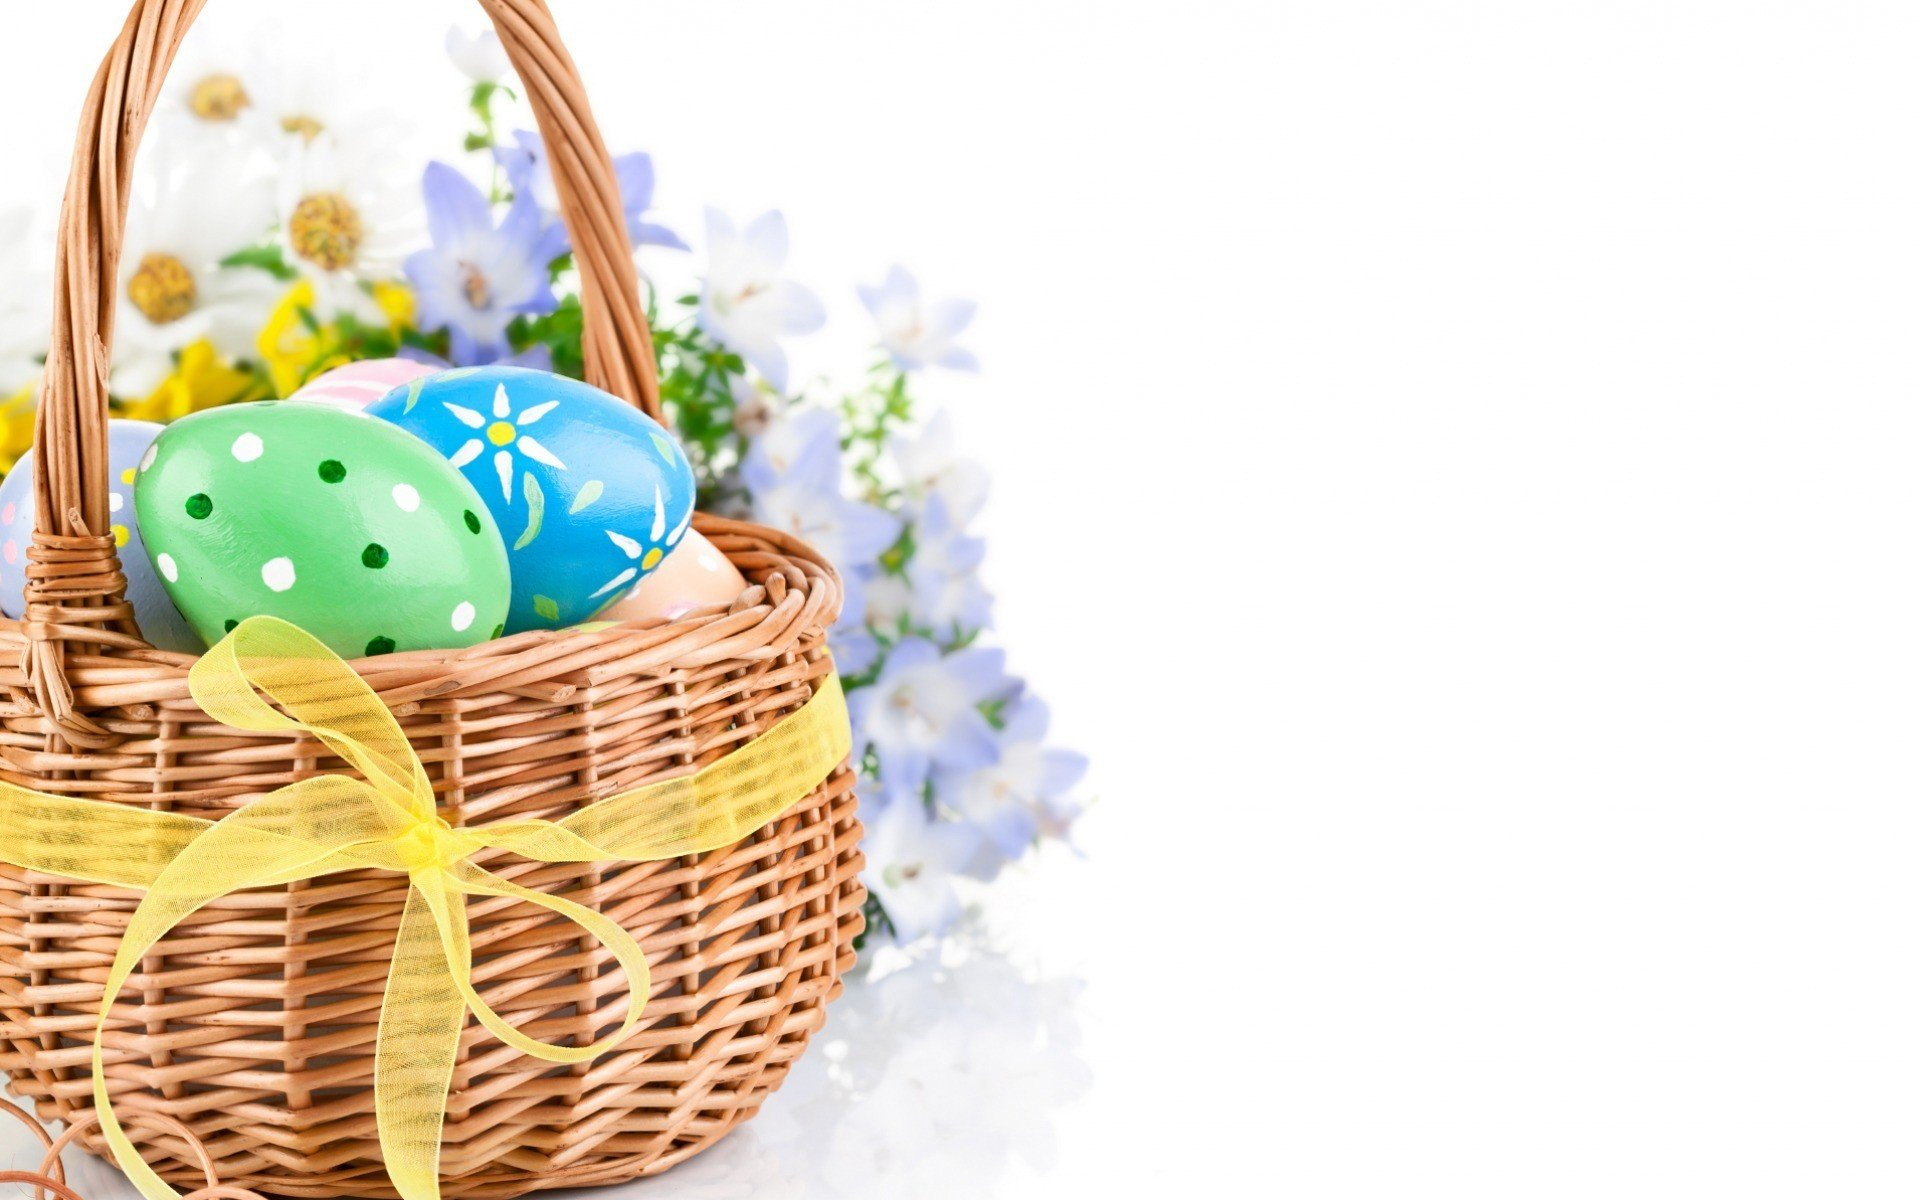 Easter Backgrounds collection download 1920x1200